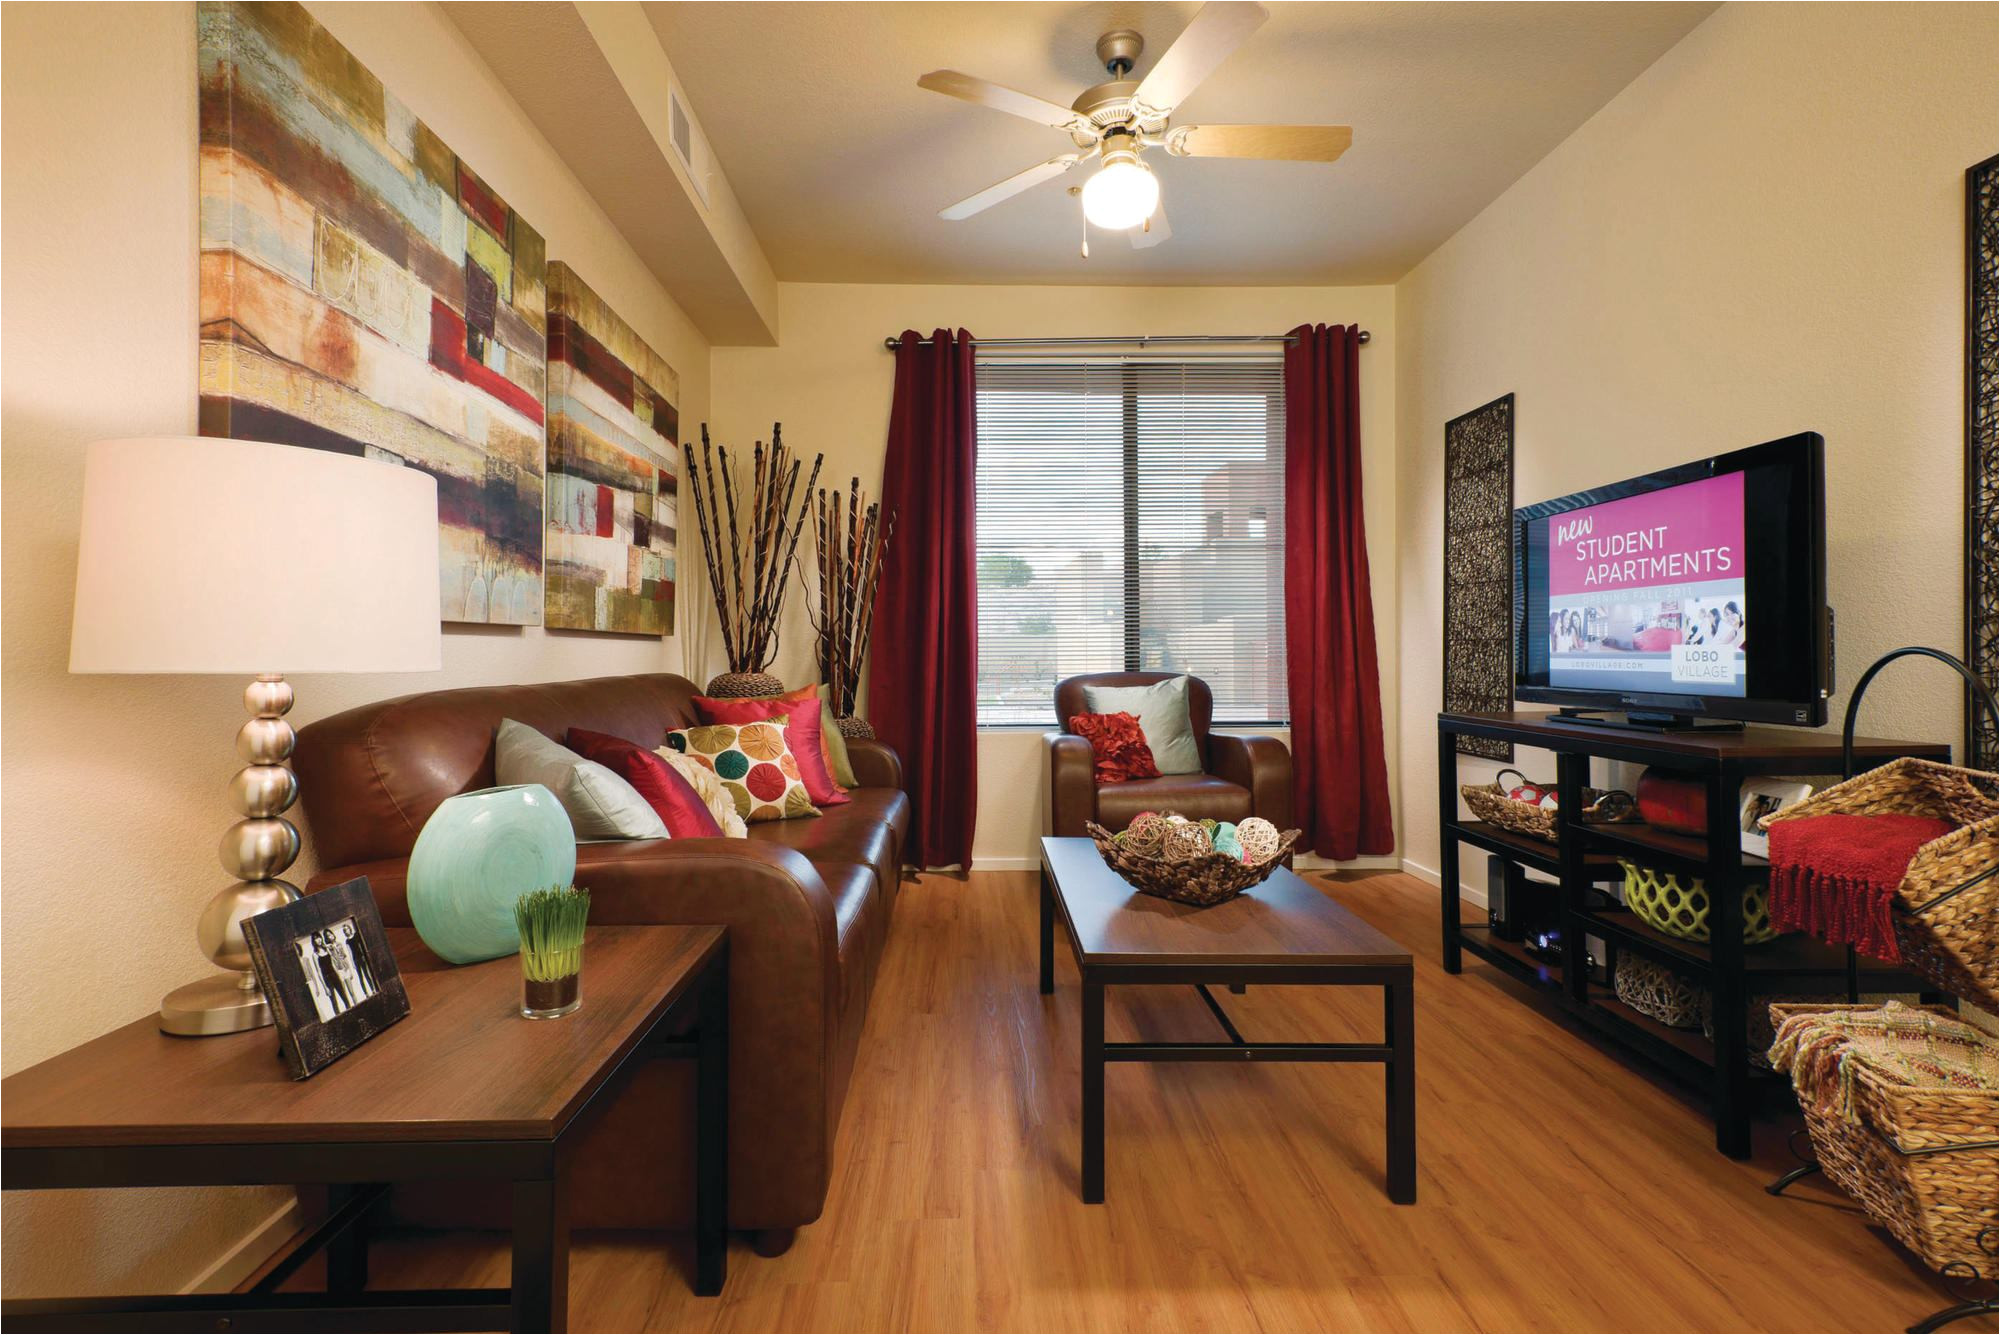 beautiful american home furniture albuquerque with acc student housing wows university of new mexico